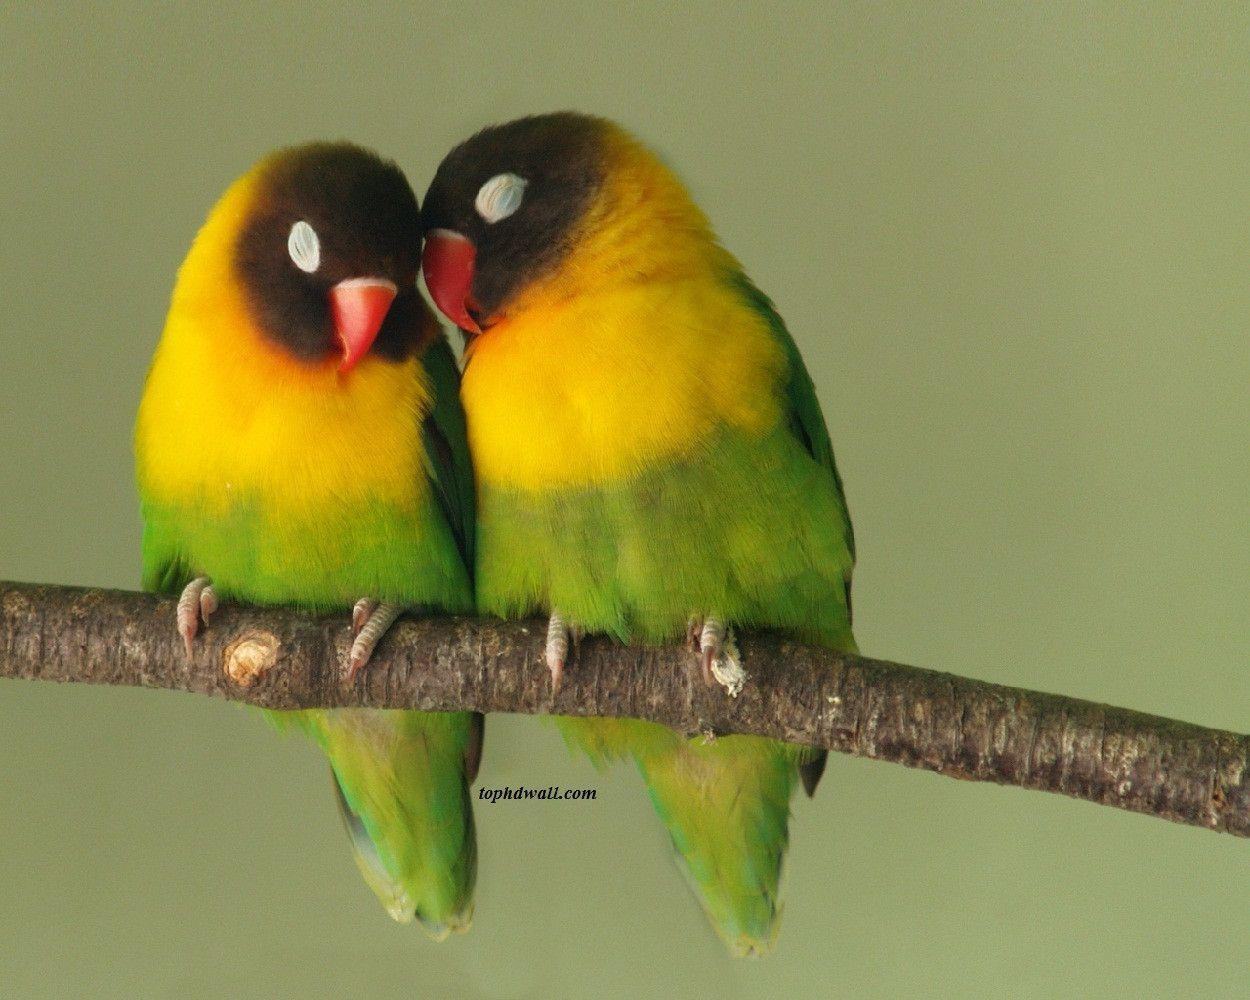 Love Birds Wallpaper Images : Wallpapers Of Love Birds - Wallpaper cave